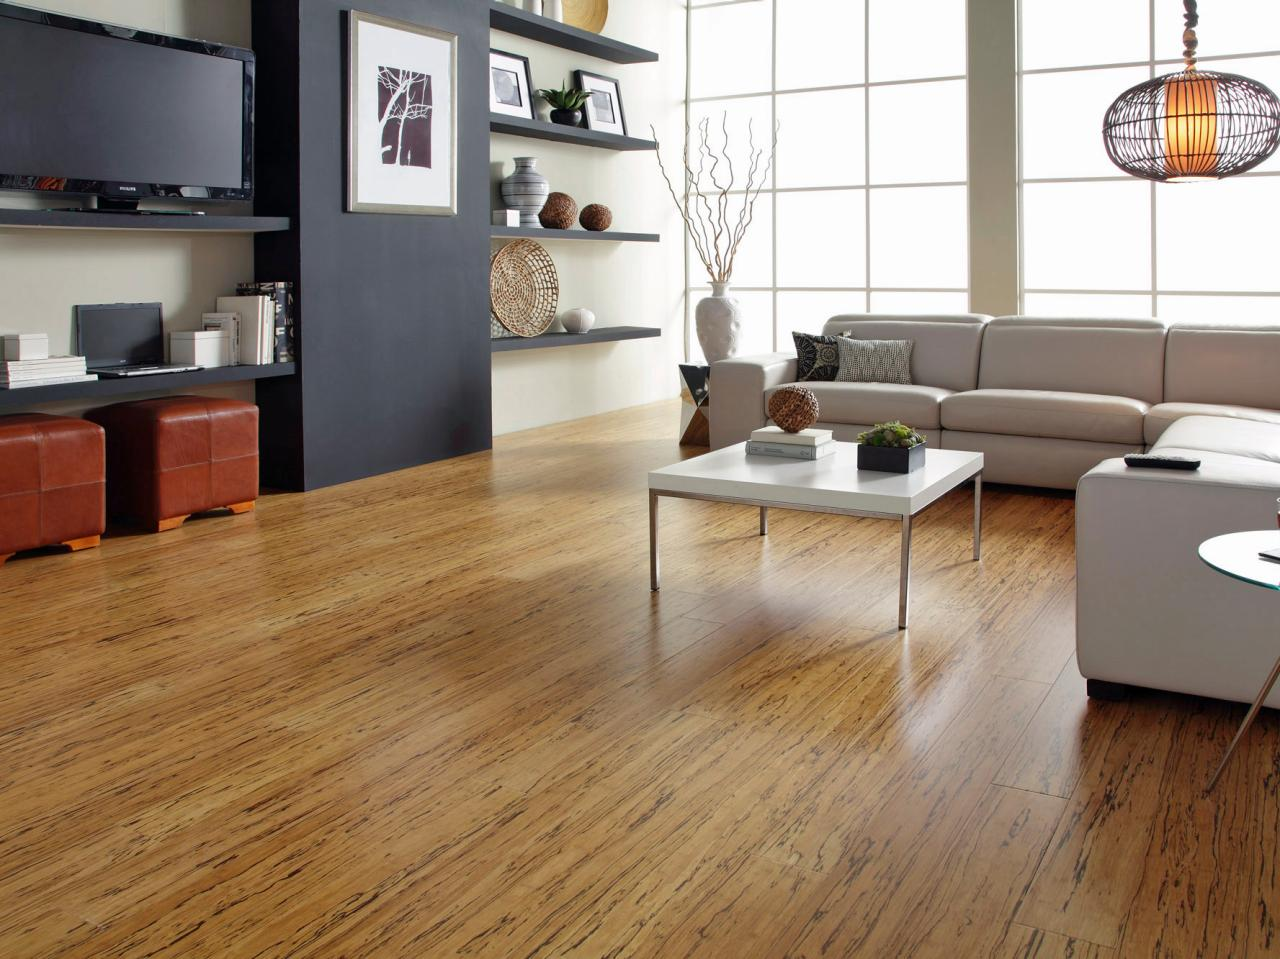 Modern Laminate Floor Design with Contemporary Interiors ...